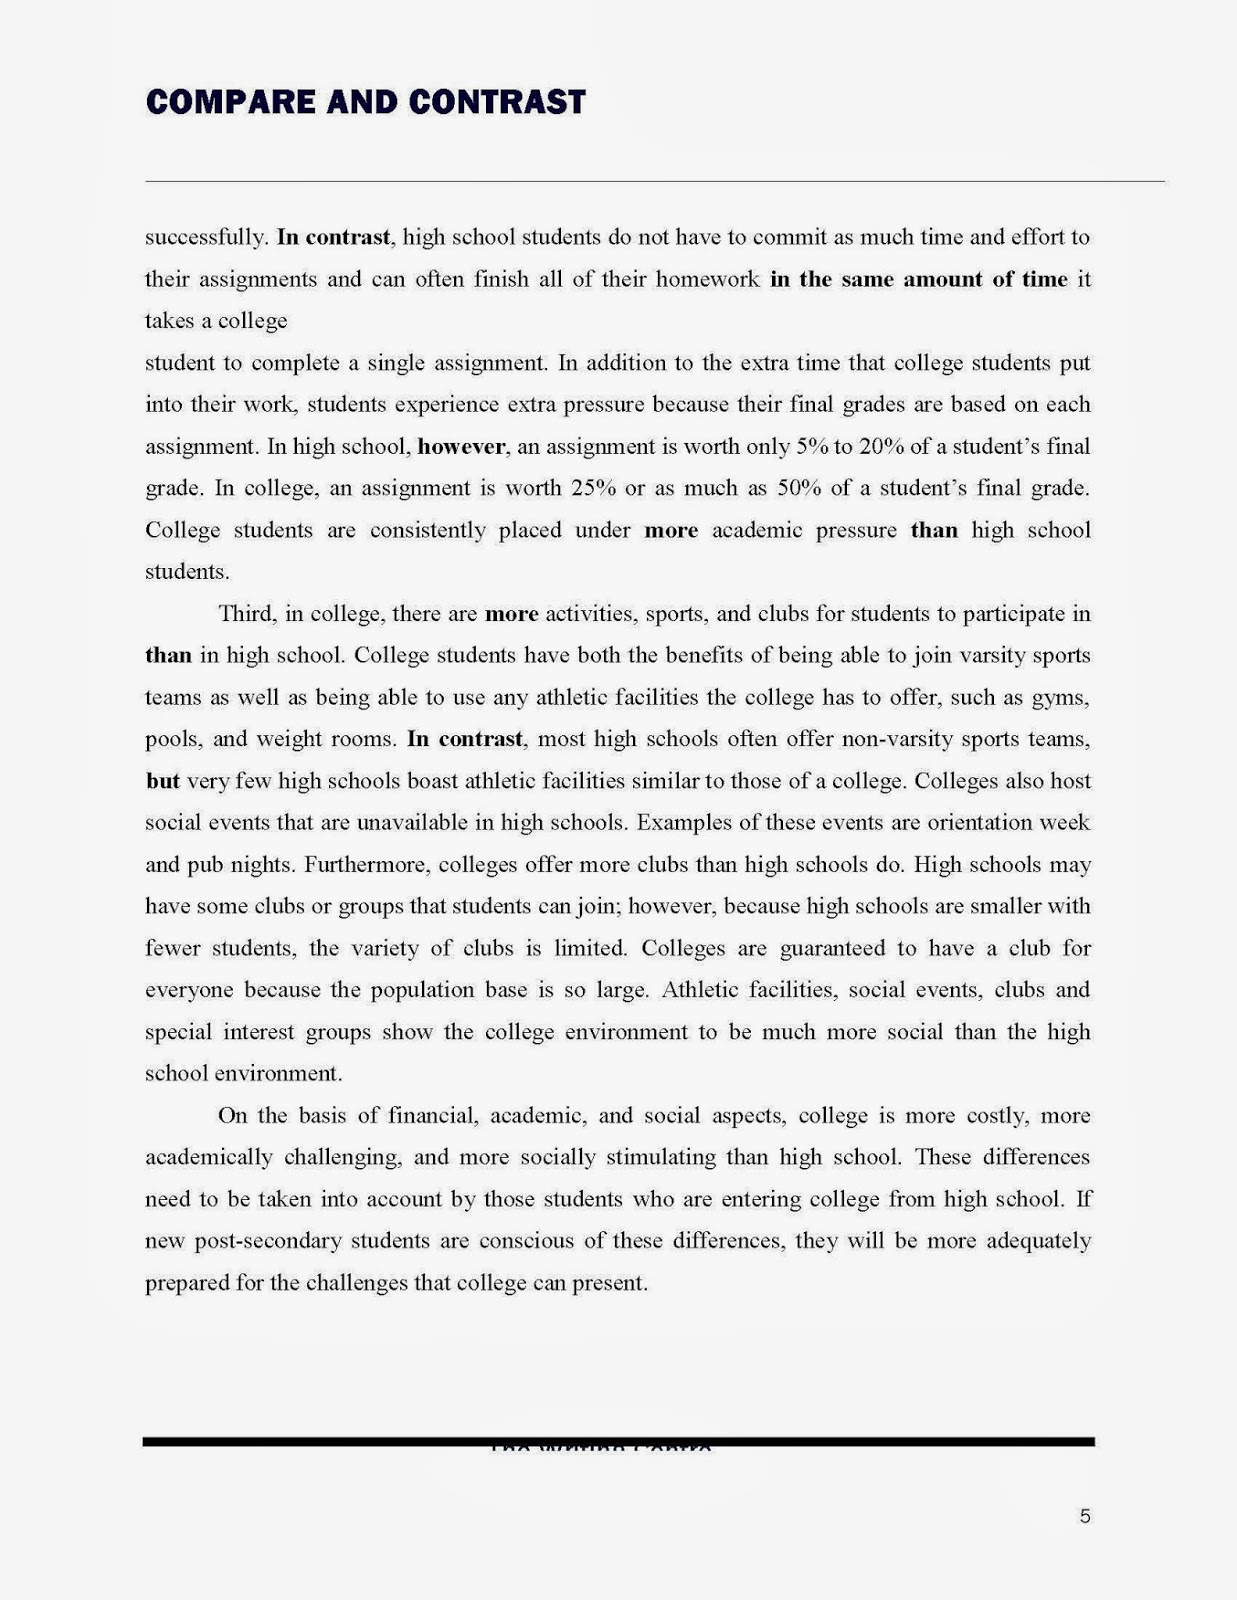 Science Development Essay Essay On The Giver By Lois Lowry Essay On The Book The Giver By Compare And Essay Paper Help also Examples Of A Thesis Statement For A Narrative Essay Compare And Contrast Essay High School Vs College Essay On The  Yellow Wallpaper Essay